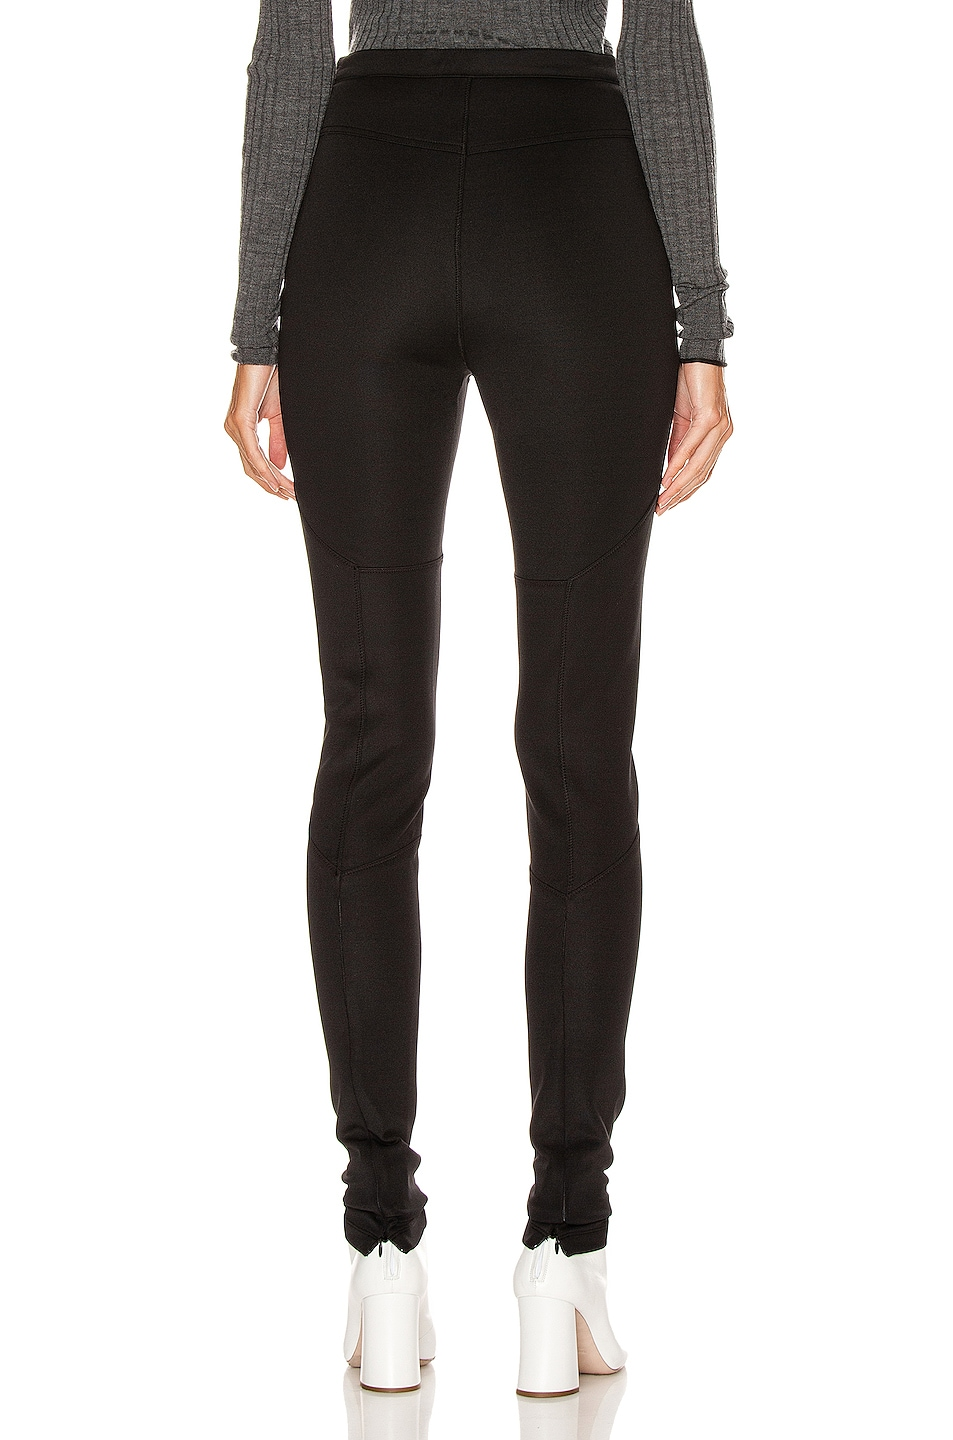 Image 3 of Proenza Schouler PSWL Straight Leg Pant in Black